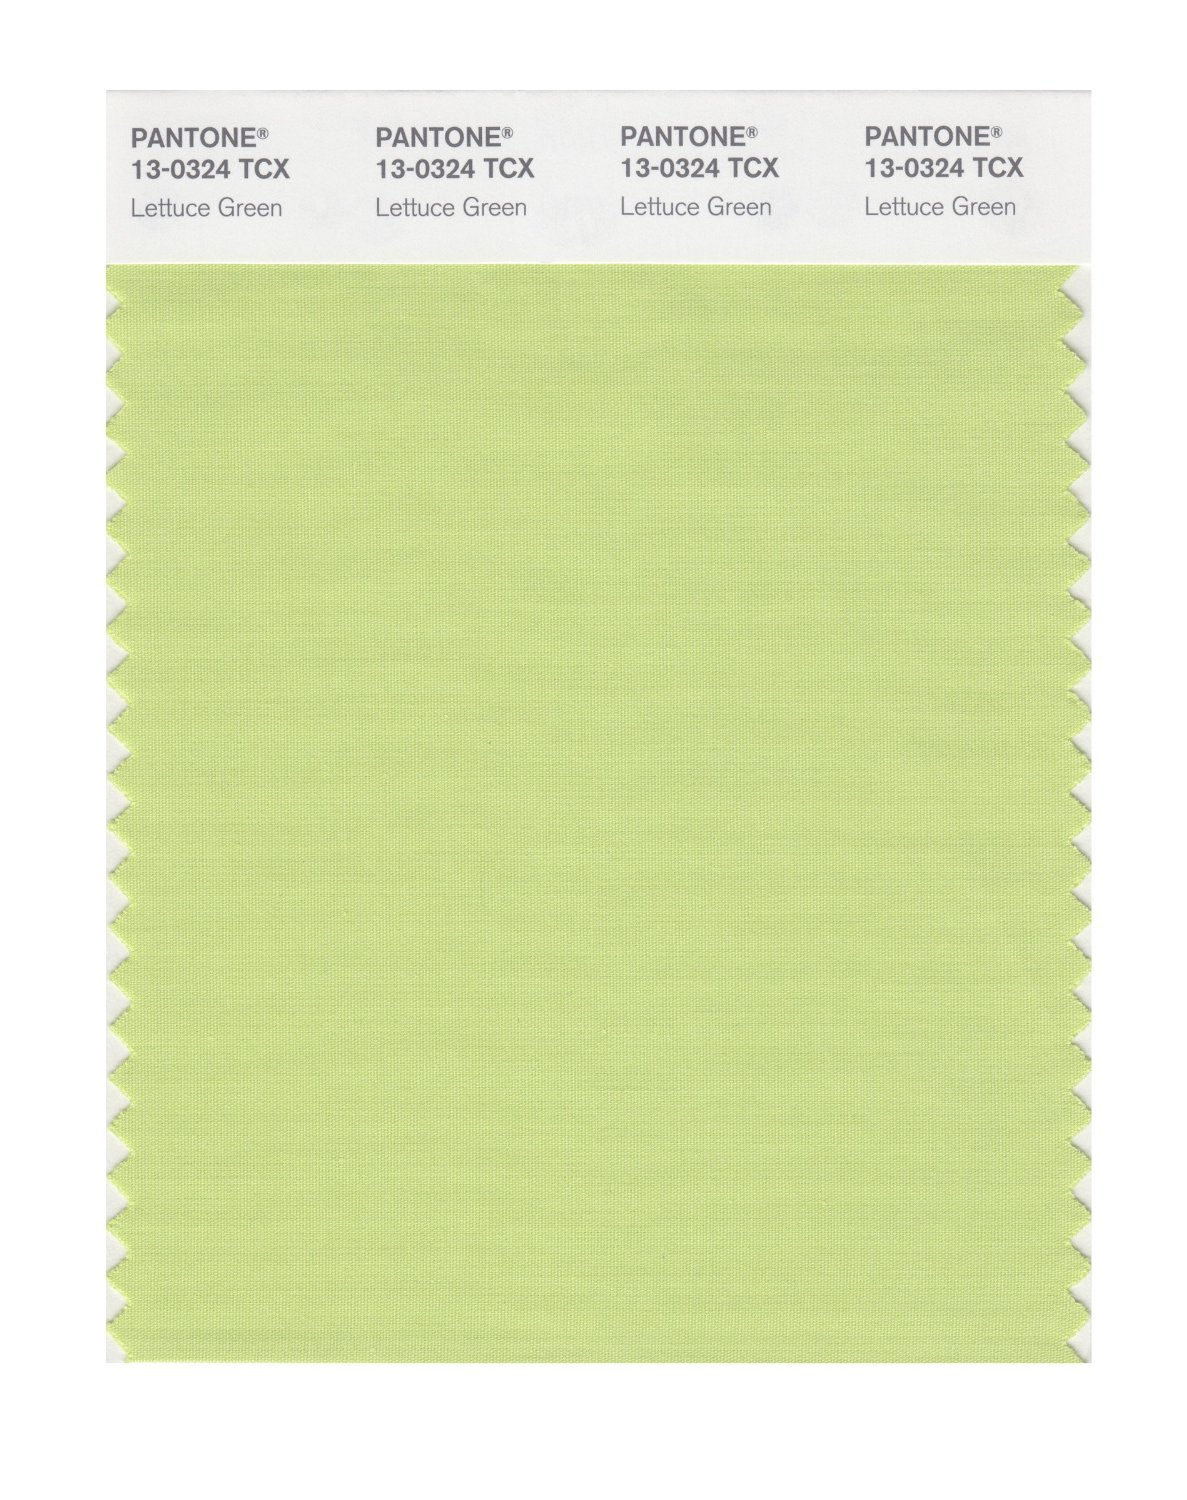 Pantone Smart Swatch 13-0324 Lettuce Green